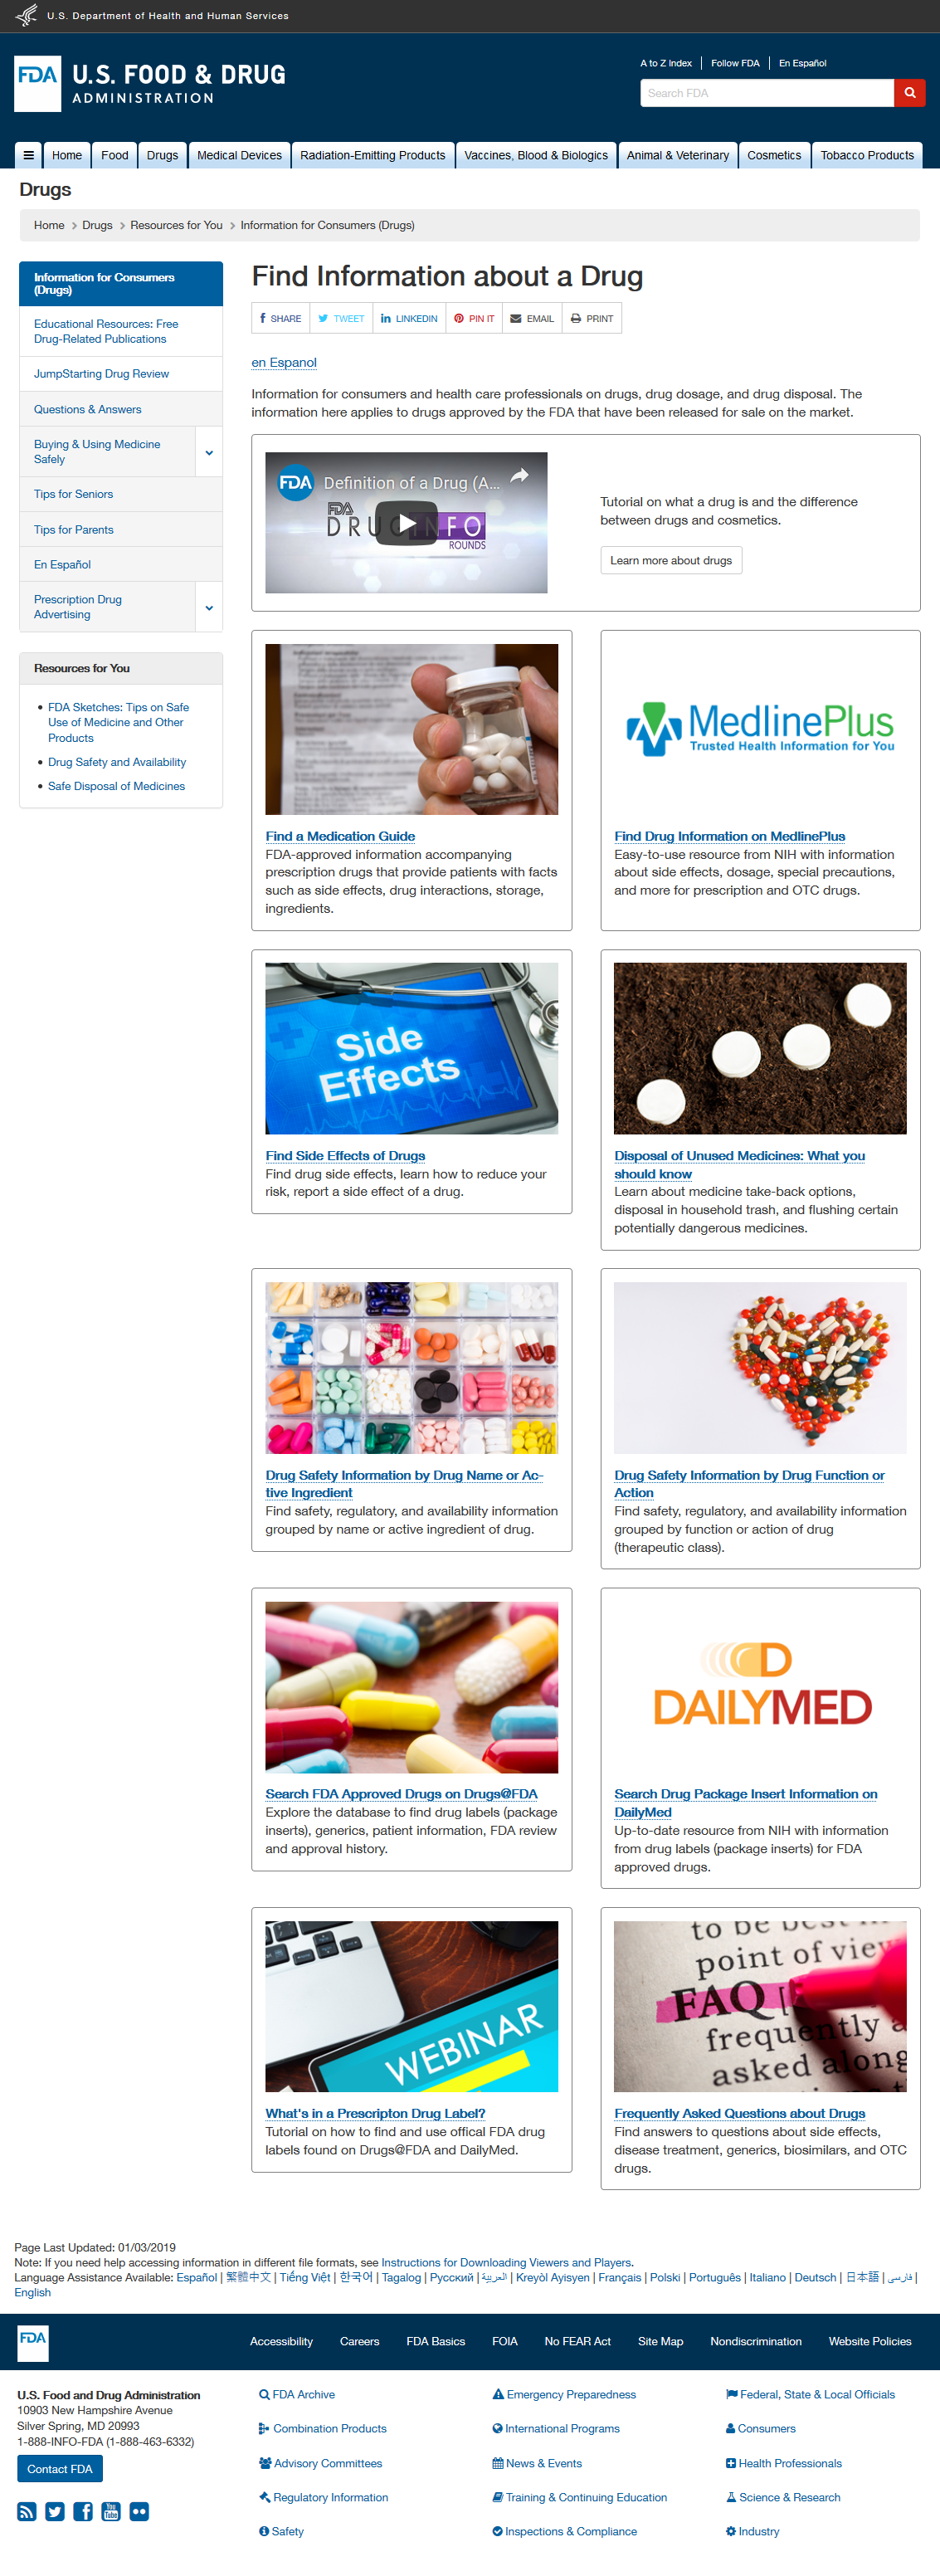 Redesigned Find Information about a Drug landing page: Desktop view